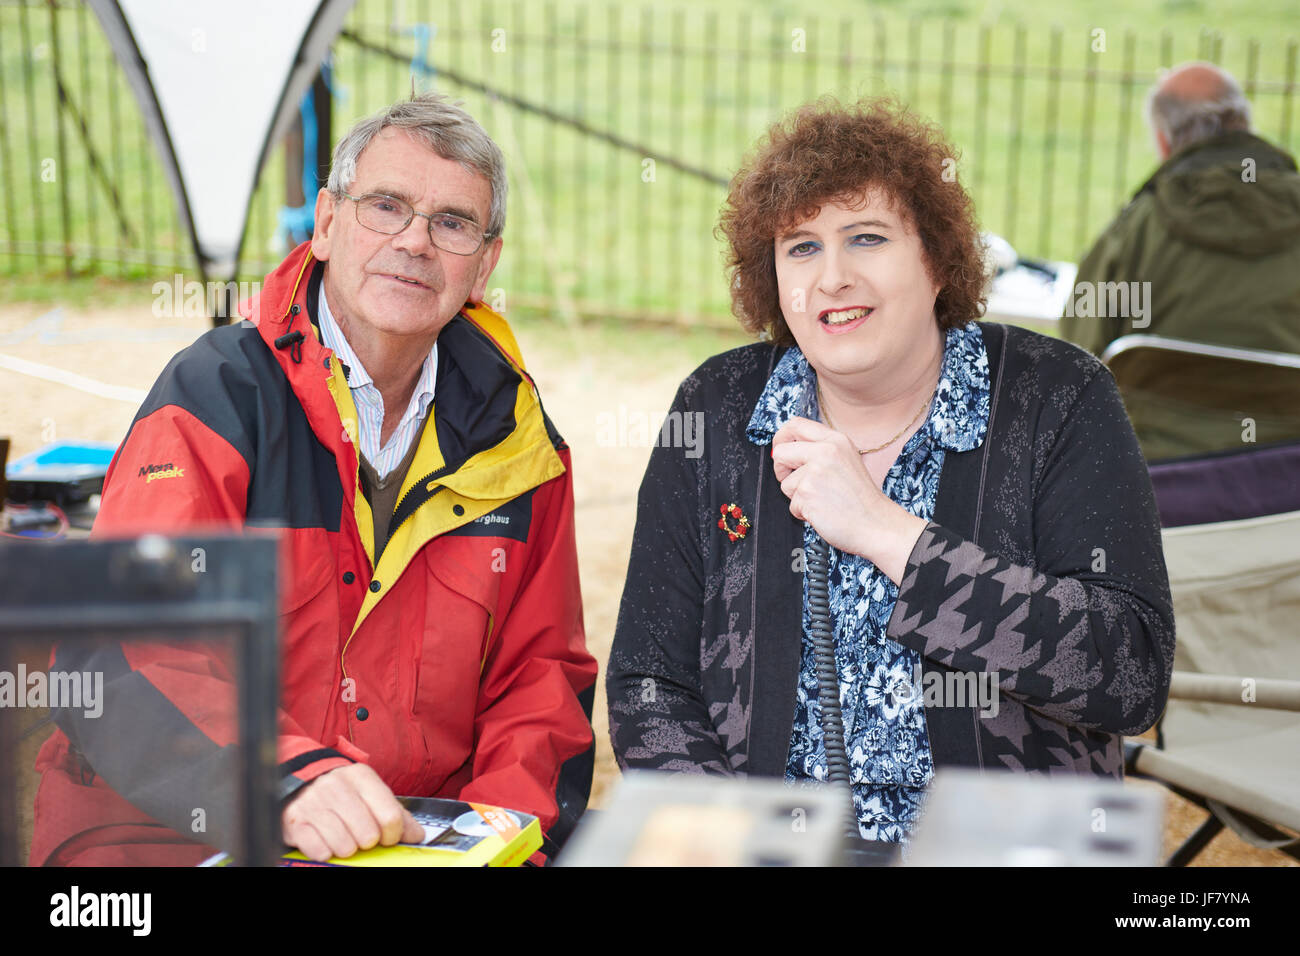 Organisers of the Ride and Stride cycle event Harry Hogg (L) and Dr Alison Johnston (R) pose with old radios outside - Stock Image